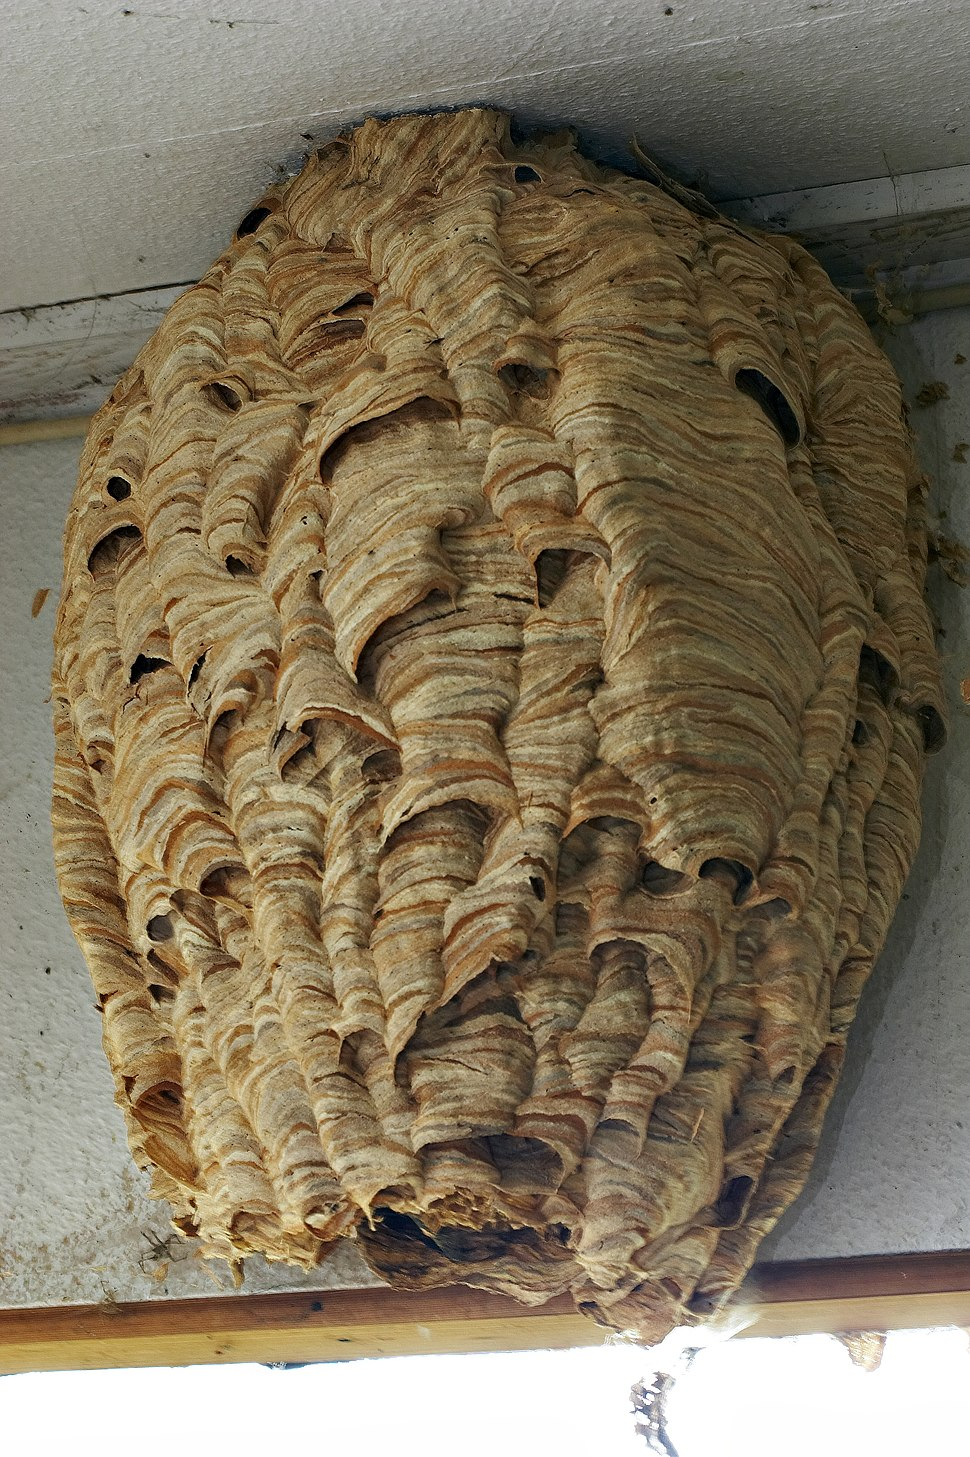 Vespa crabro nest full